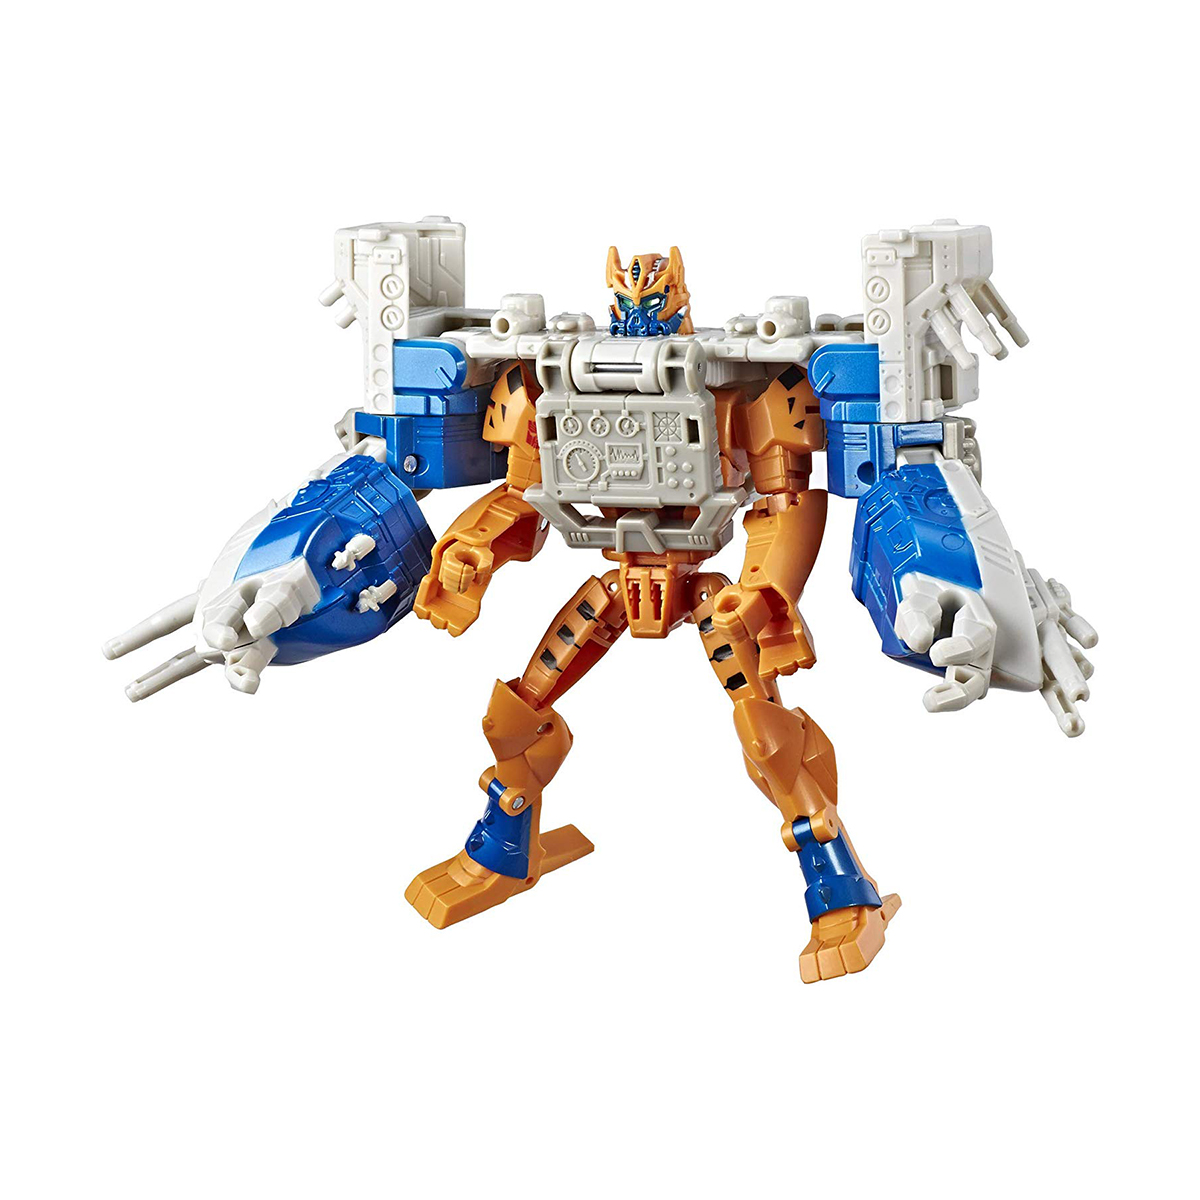 Figurina Transformers Cyberverse Spark Armor, Cheetor, Sea Fury, E5559